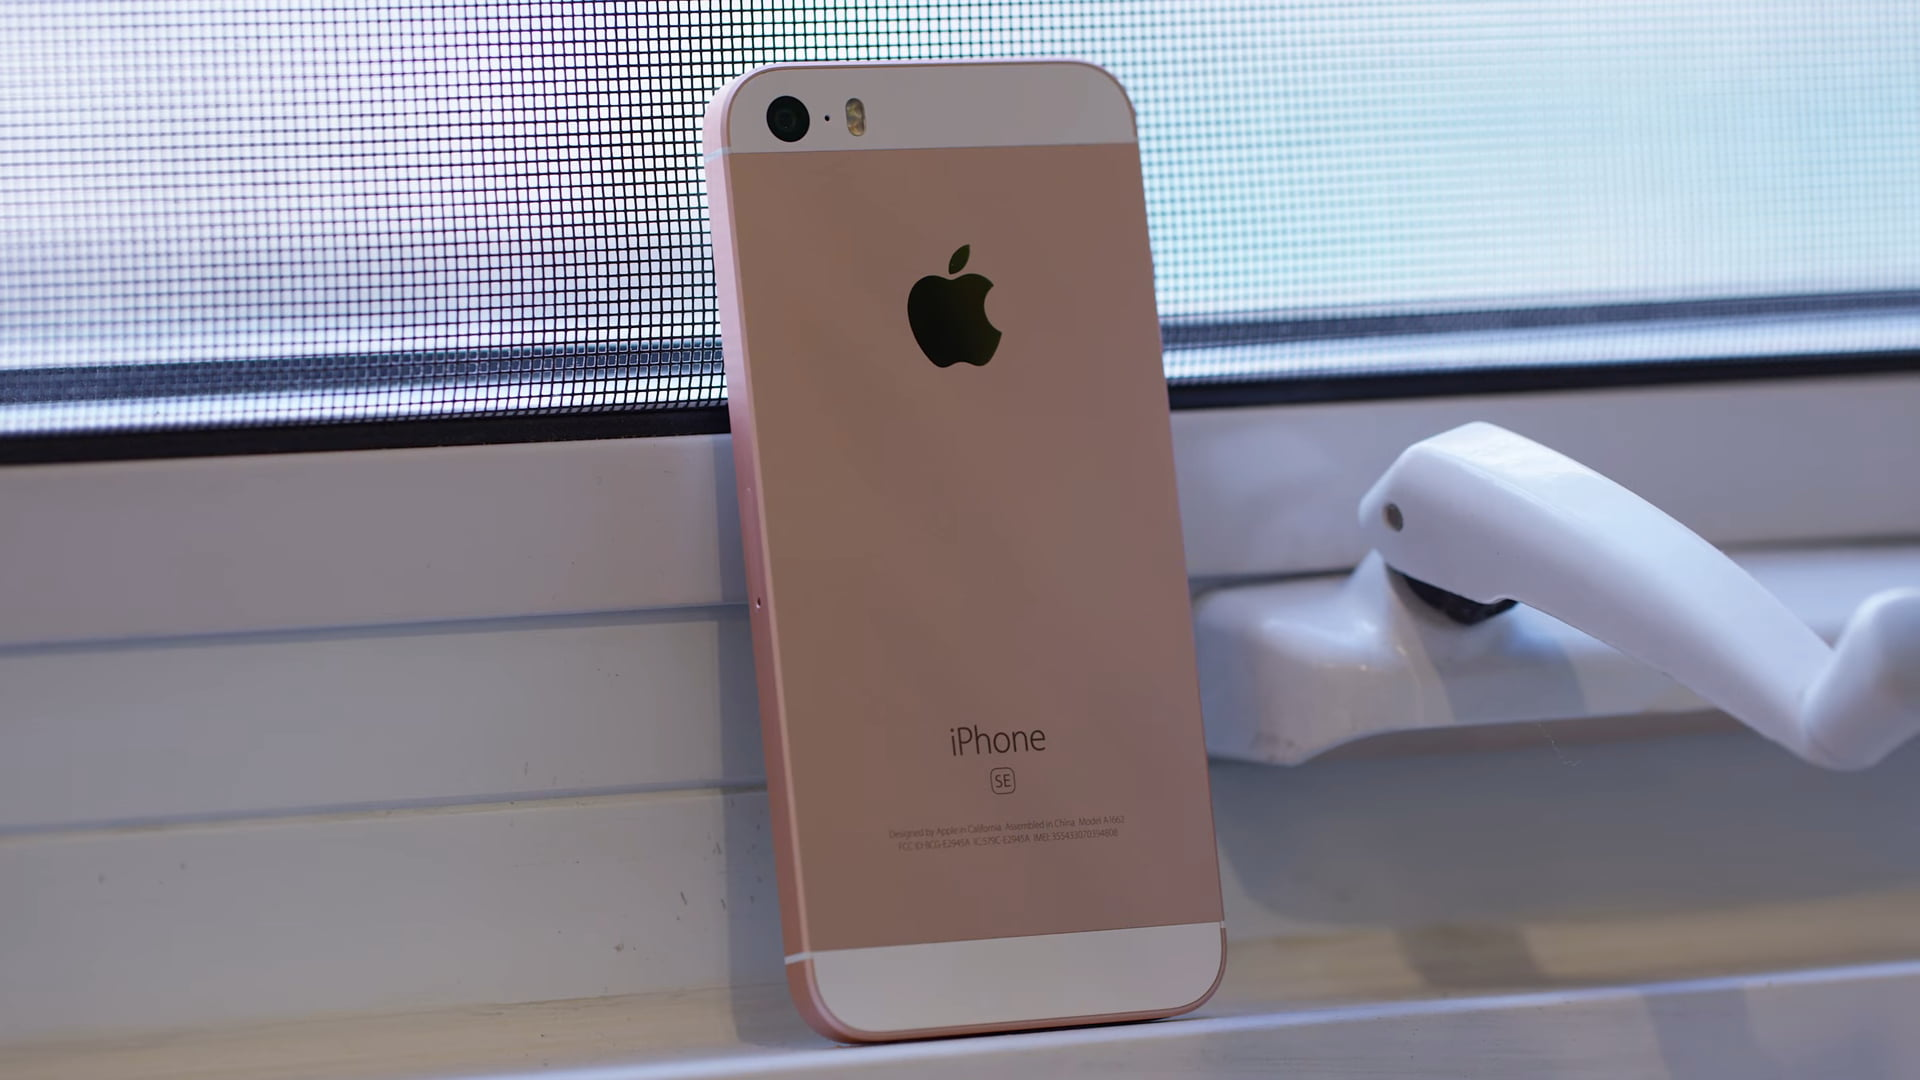 iPhone SE discontinue